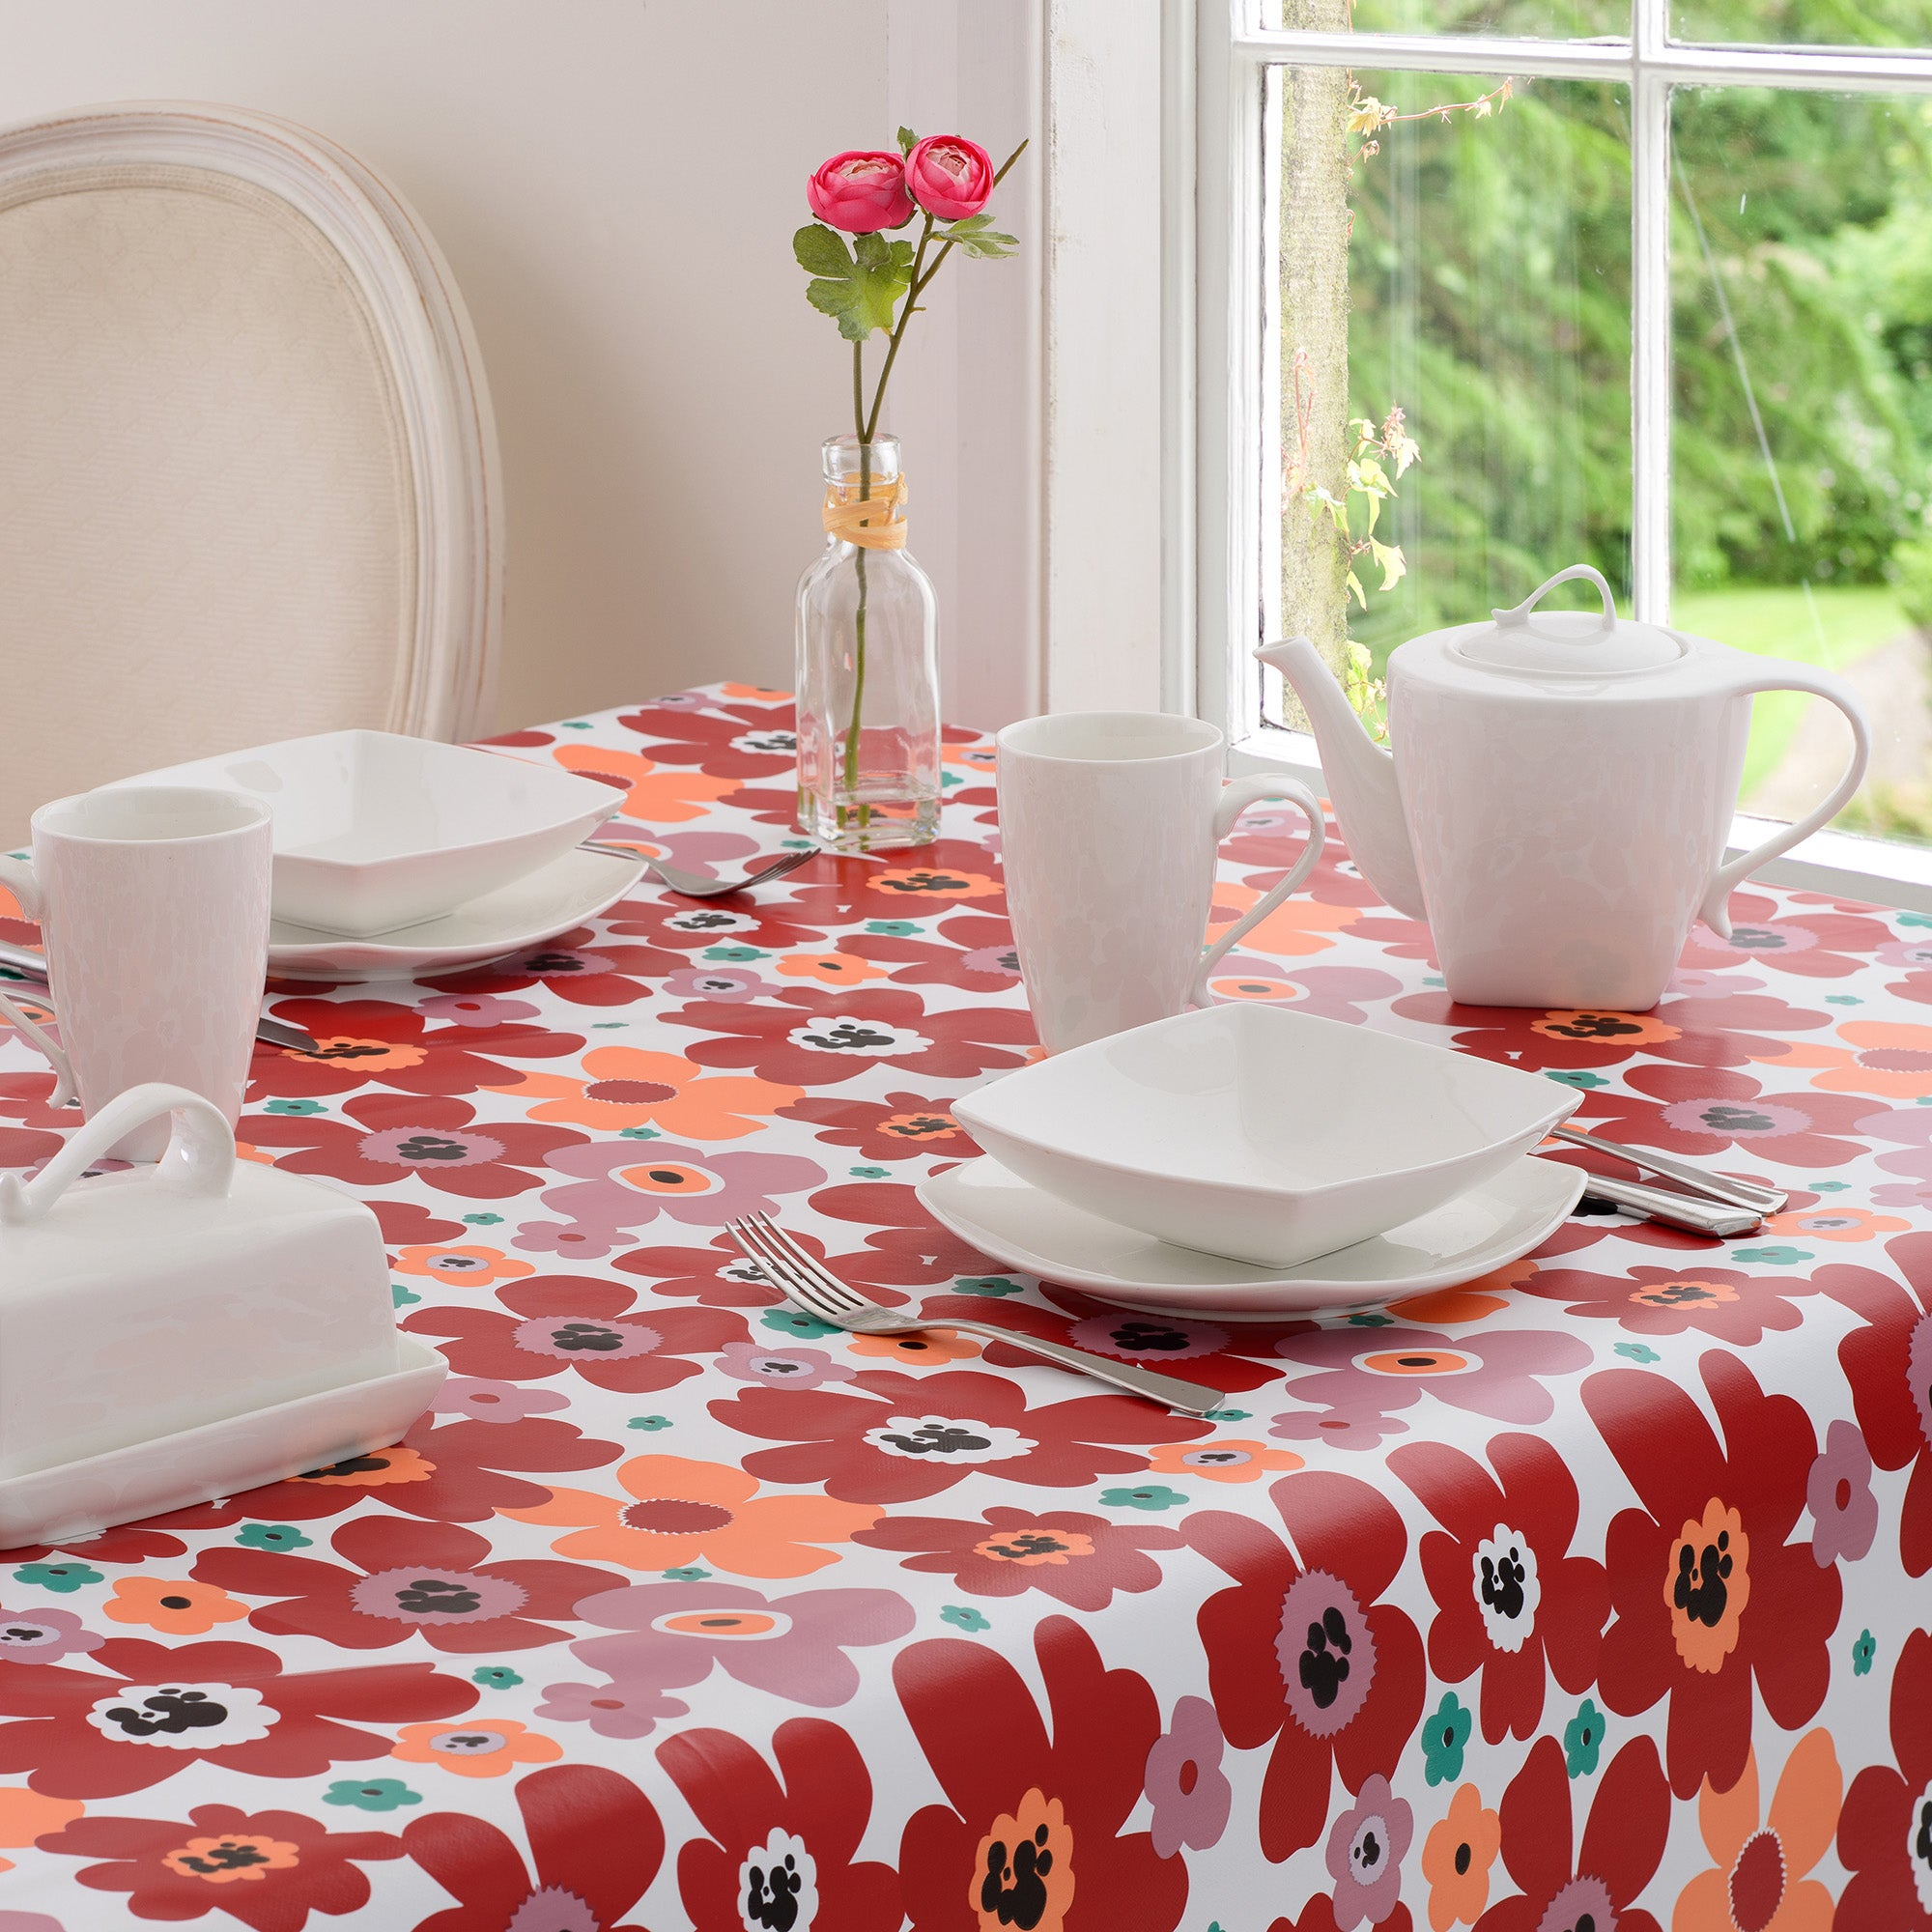 Aster Collection Floral PVC Tablecloth